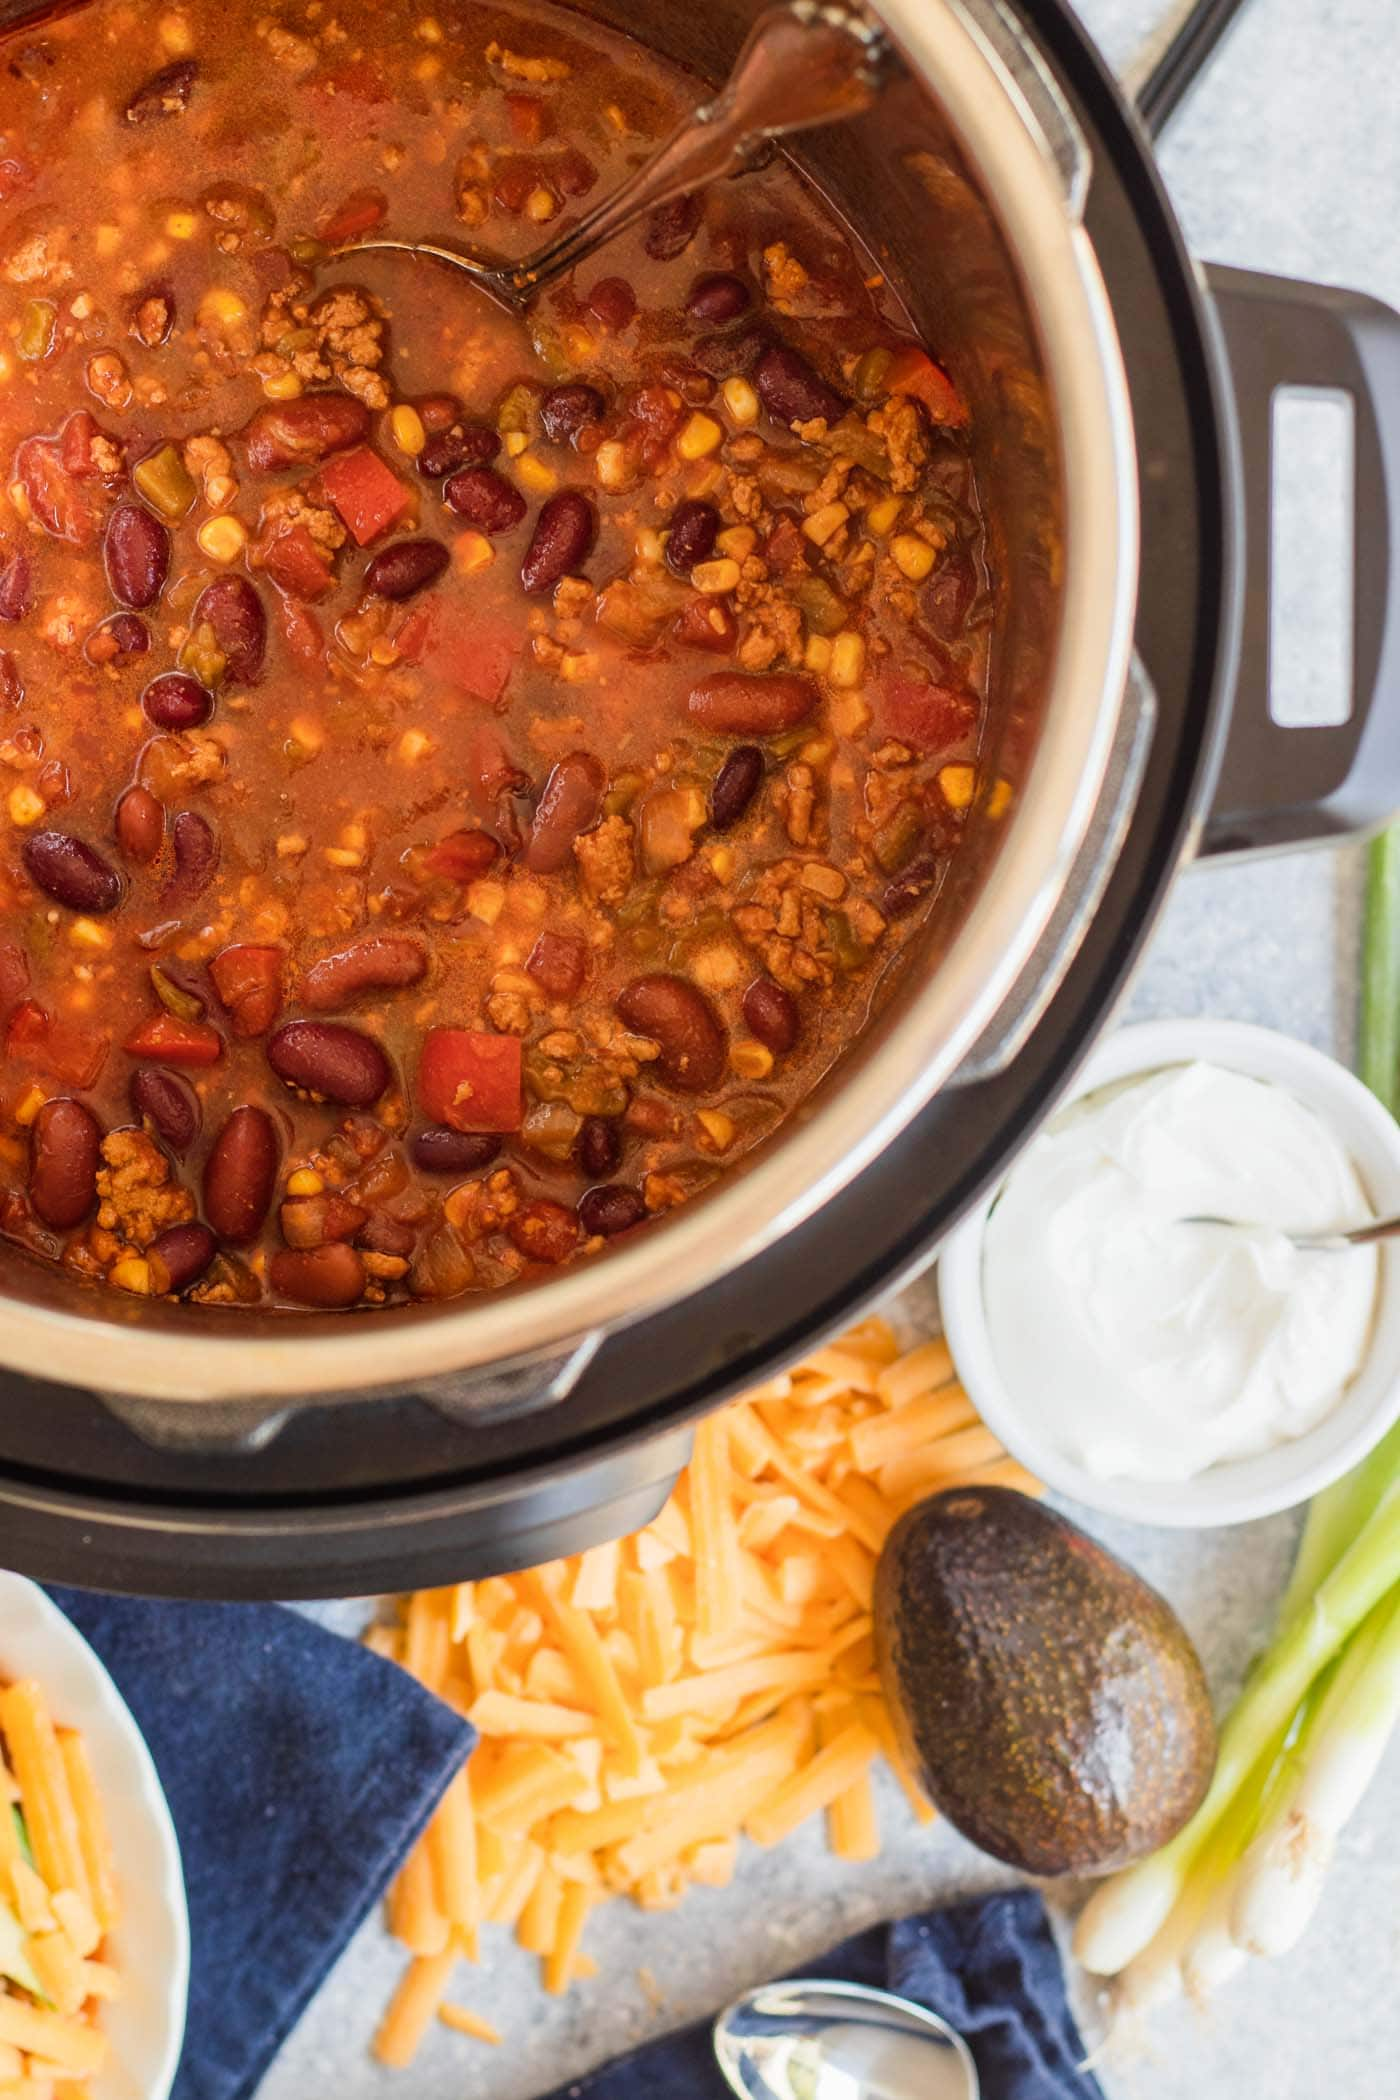 photo of the Best Easy Turkey Chili Recipe cooking in an Instant Pot by top Houston lifestyle blogger Ashley Rose of Sugar & Cloth